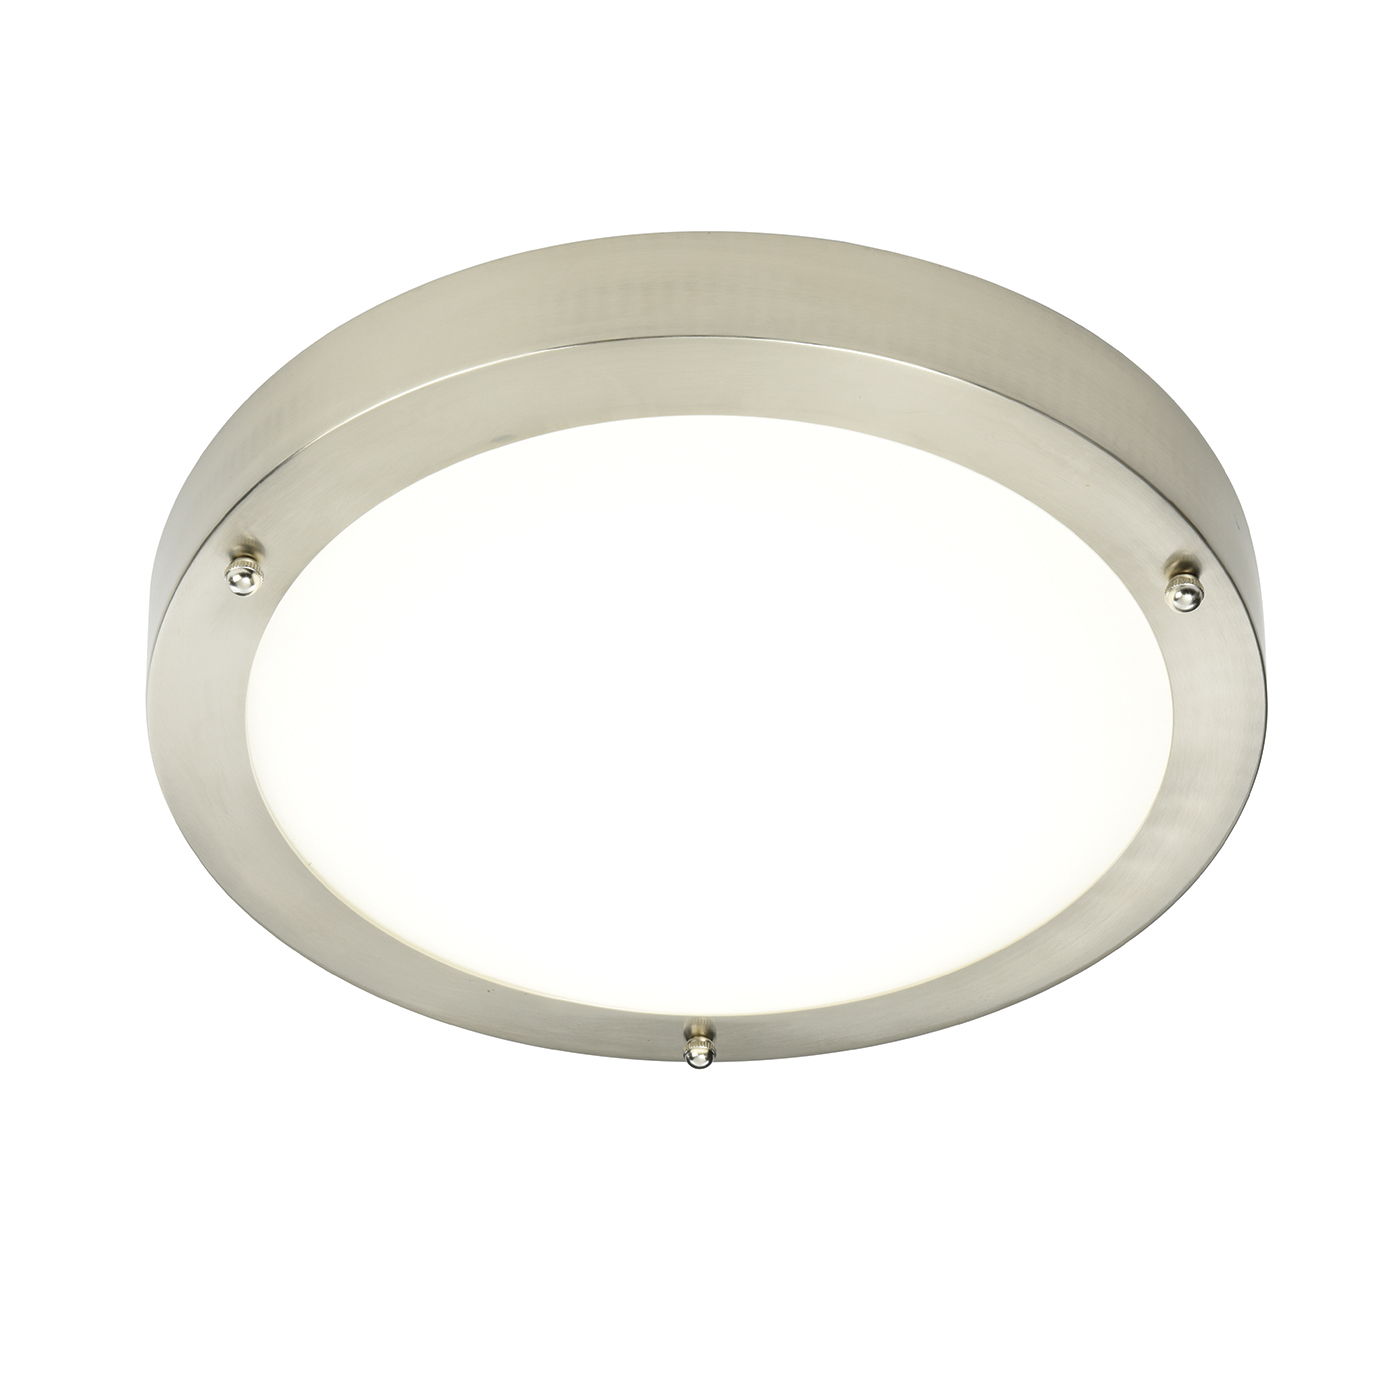 Endon Portico LED 300mm flush bathroom ceiling light IP44 9W Satin nickel glass